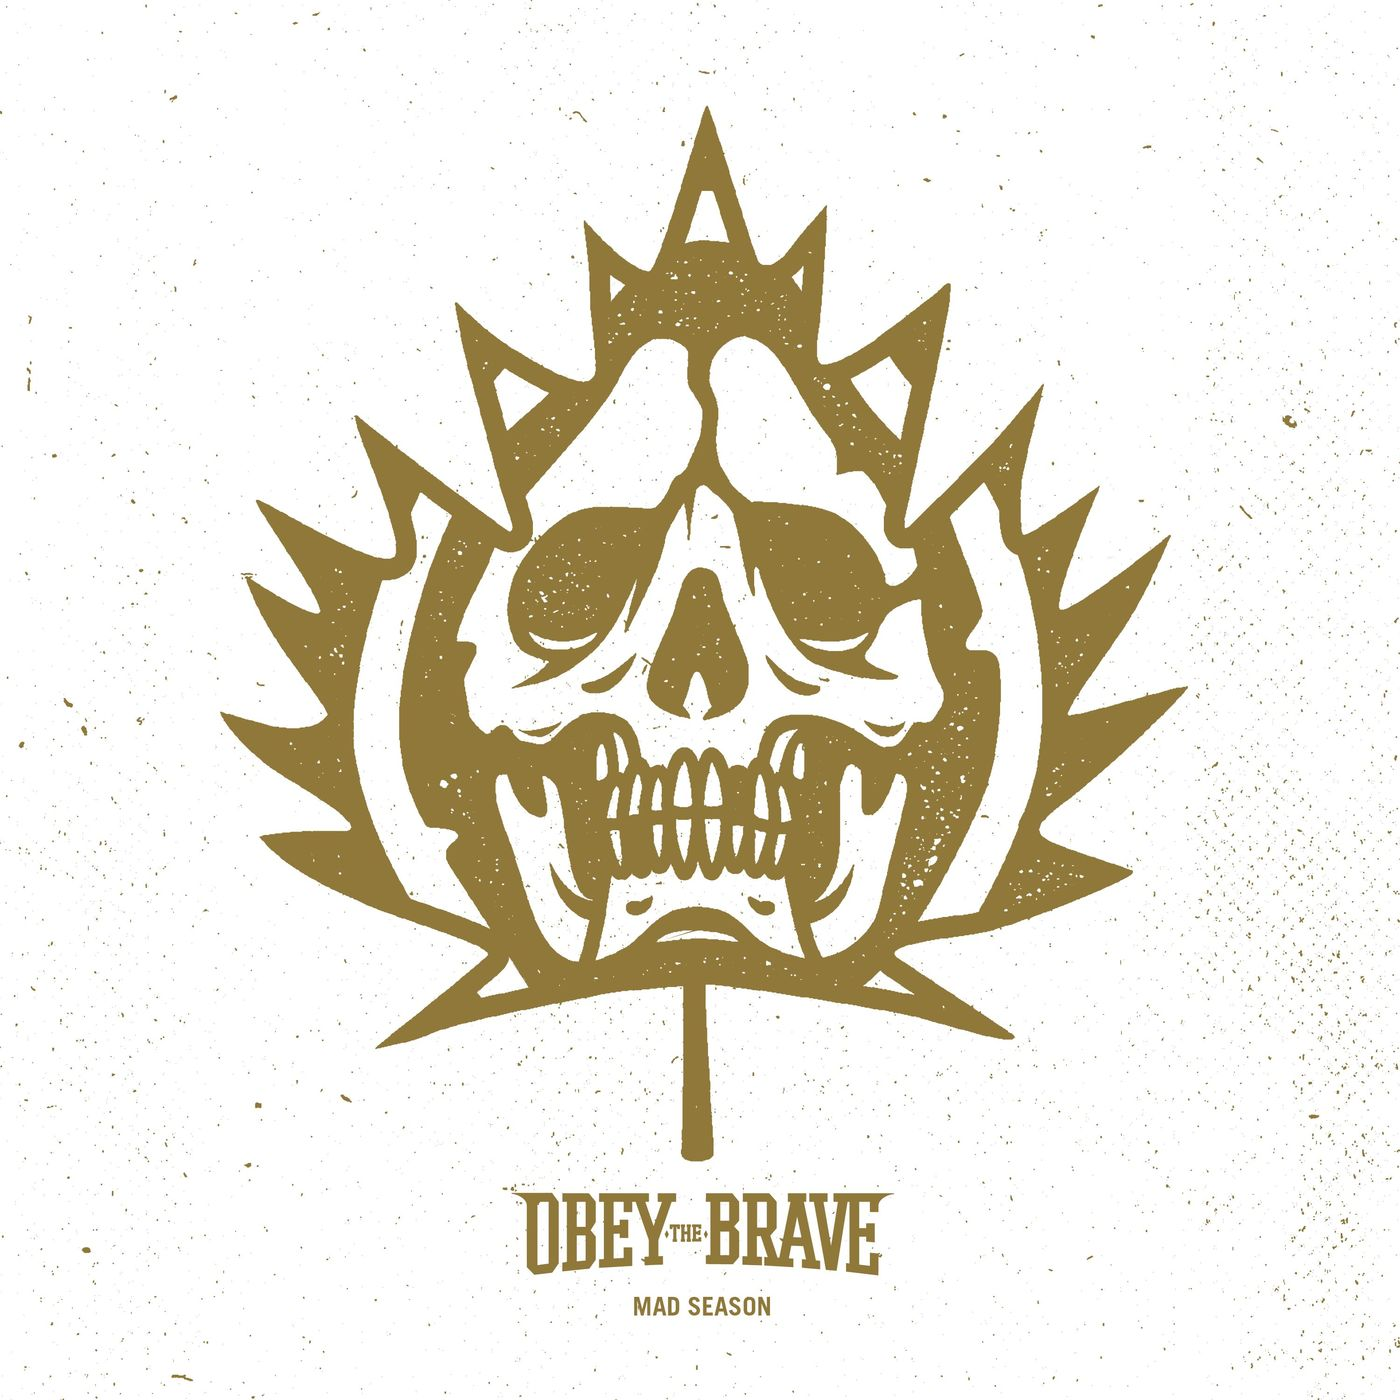 Obey The Brave - Drama [single] (2017)